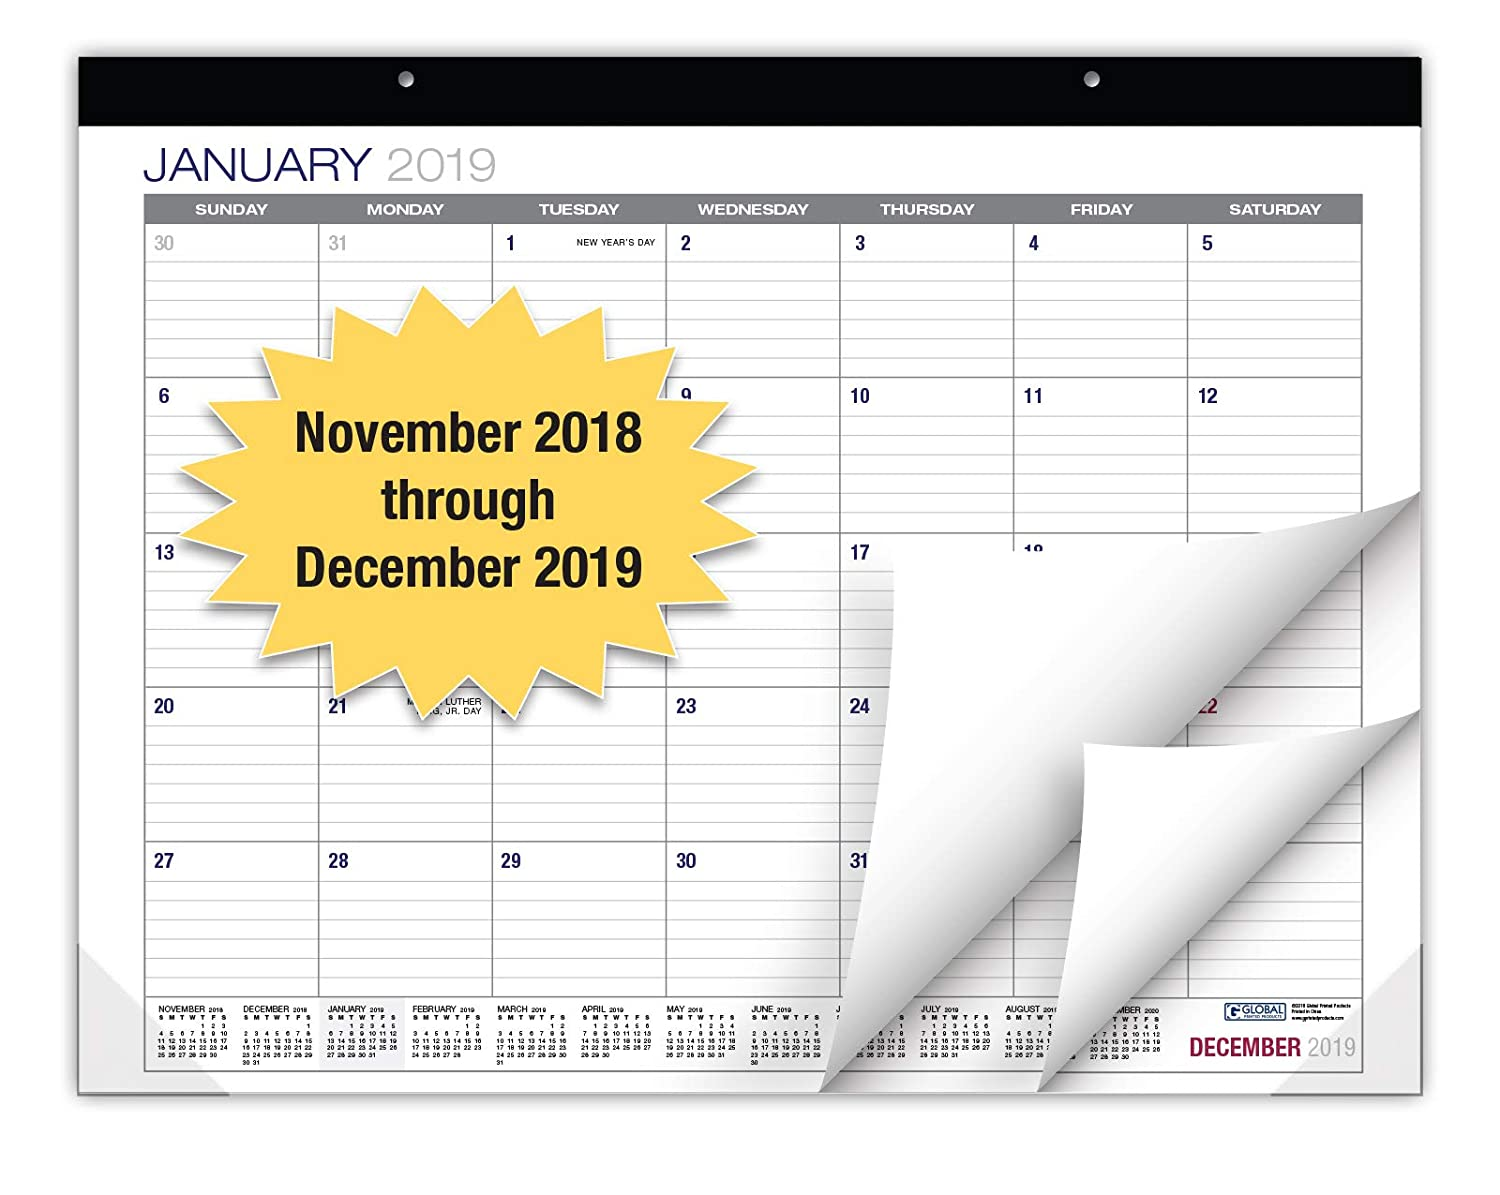 Professional Desk Calendar 2019: Large Monthly Pages - 22x17 - Runs from November 2018 Through December 2019 - Desk/Wall Calendar can be Used Throughout 2018-2019. Global Printed Products